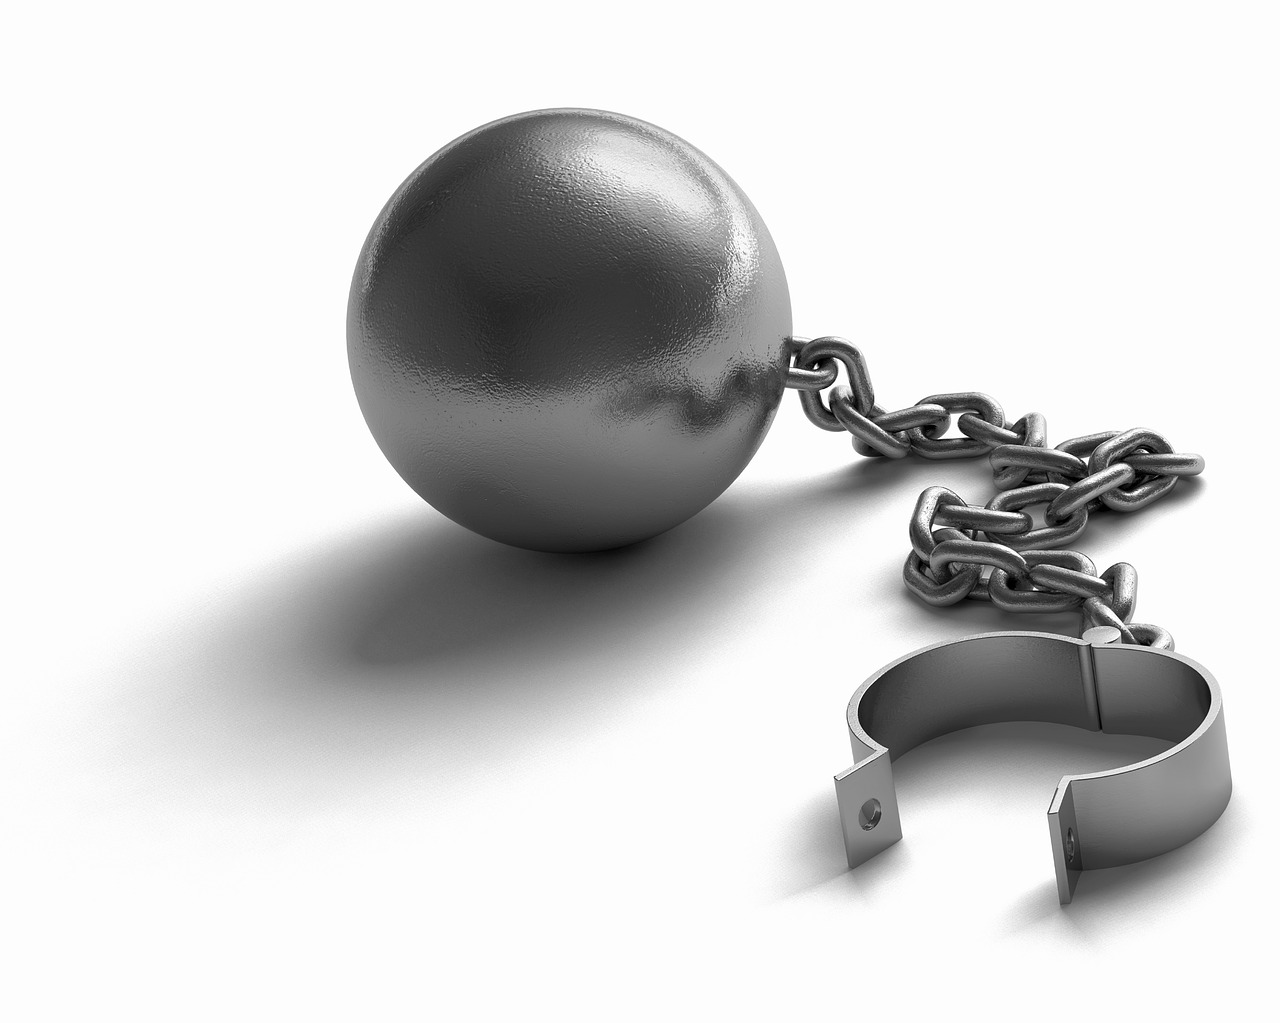 ball-and-chain-2624325_1280